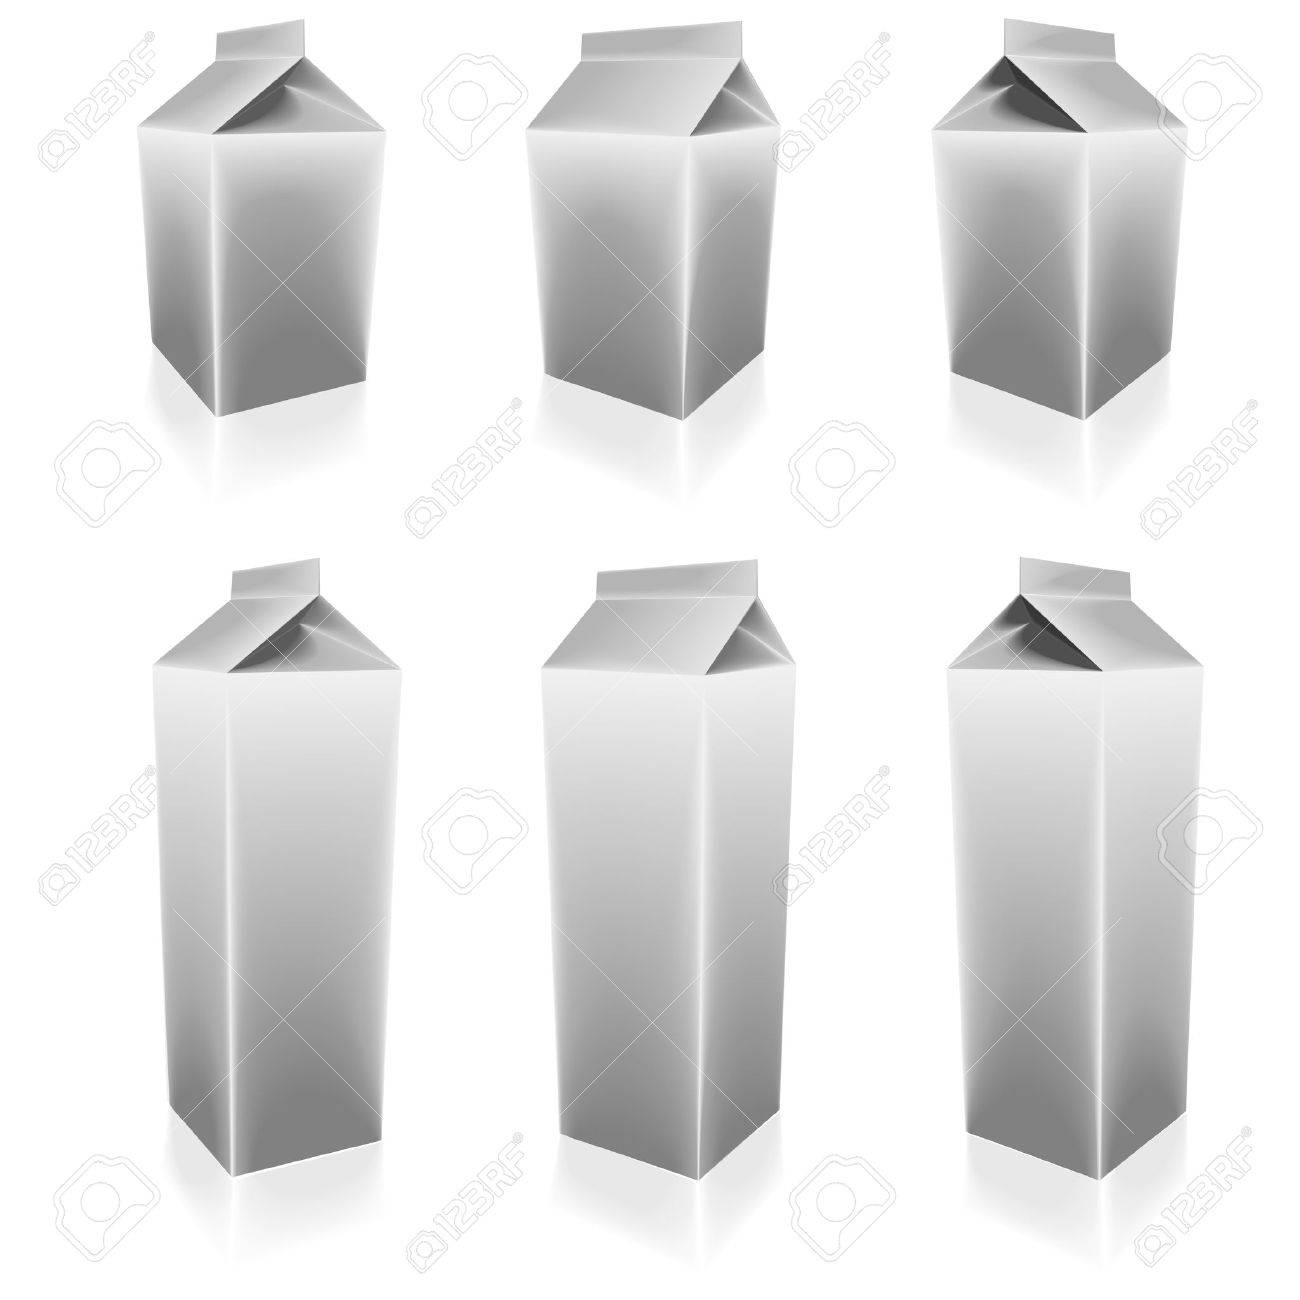 illustration of a set of blank milk packs with different sizes and angles Stock Vector - 14189735